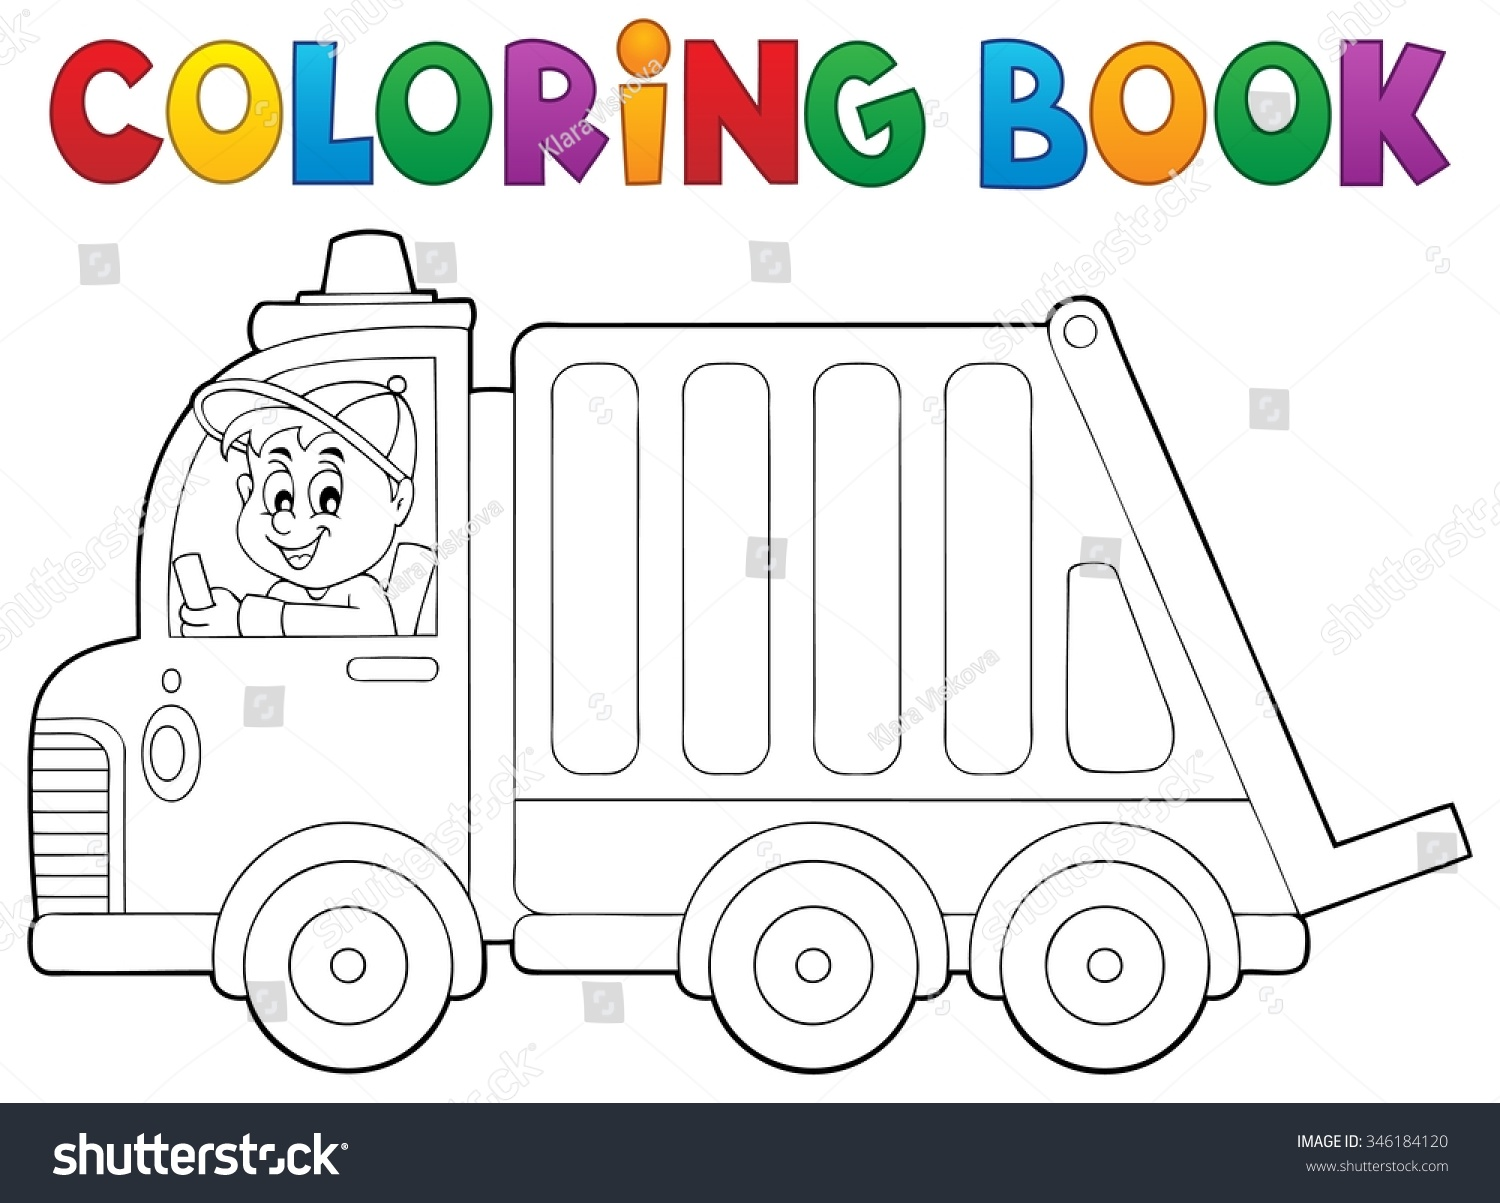 coloring book garbage collection truck eps10 vector illustration - Coloring Book Truck